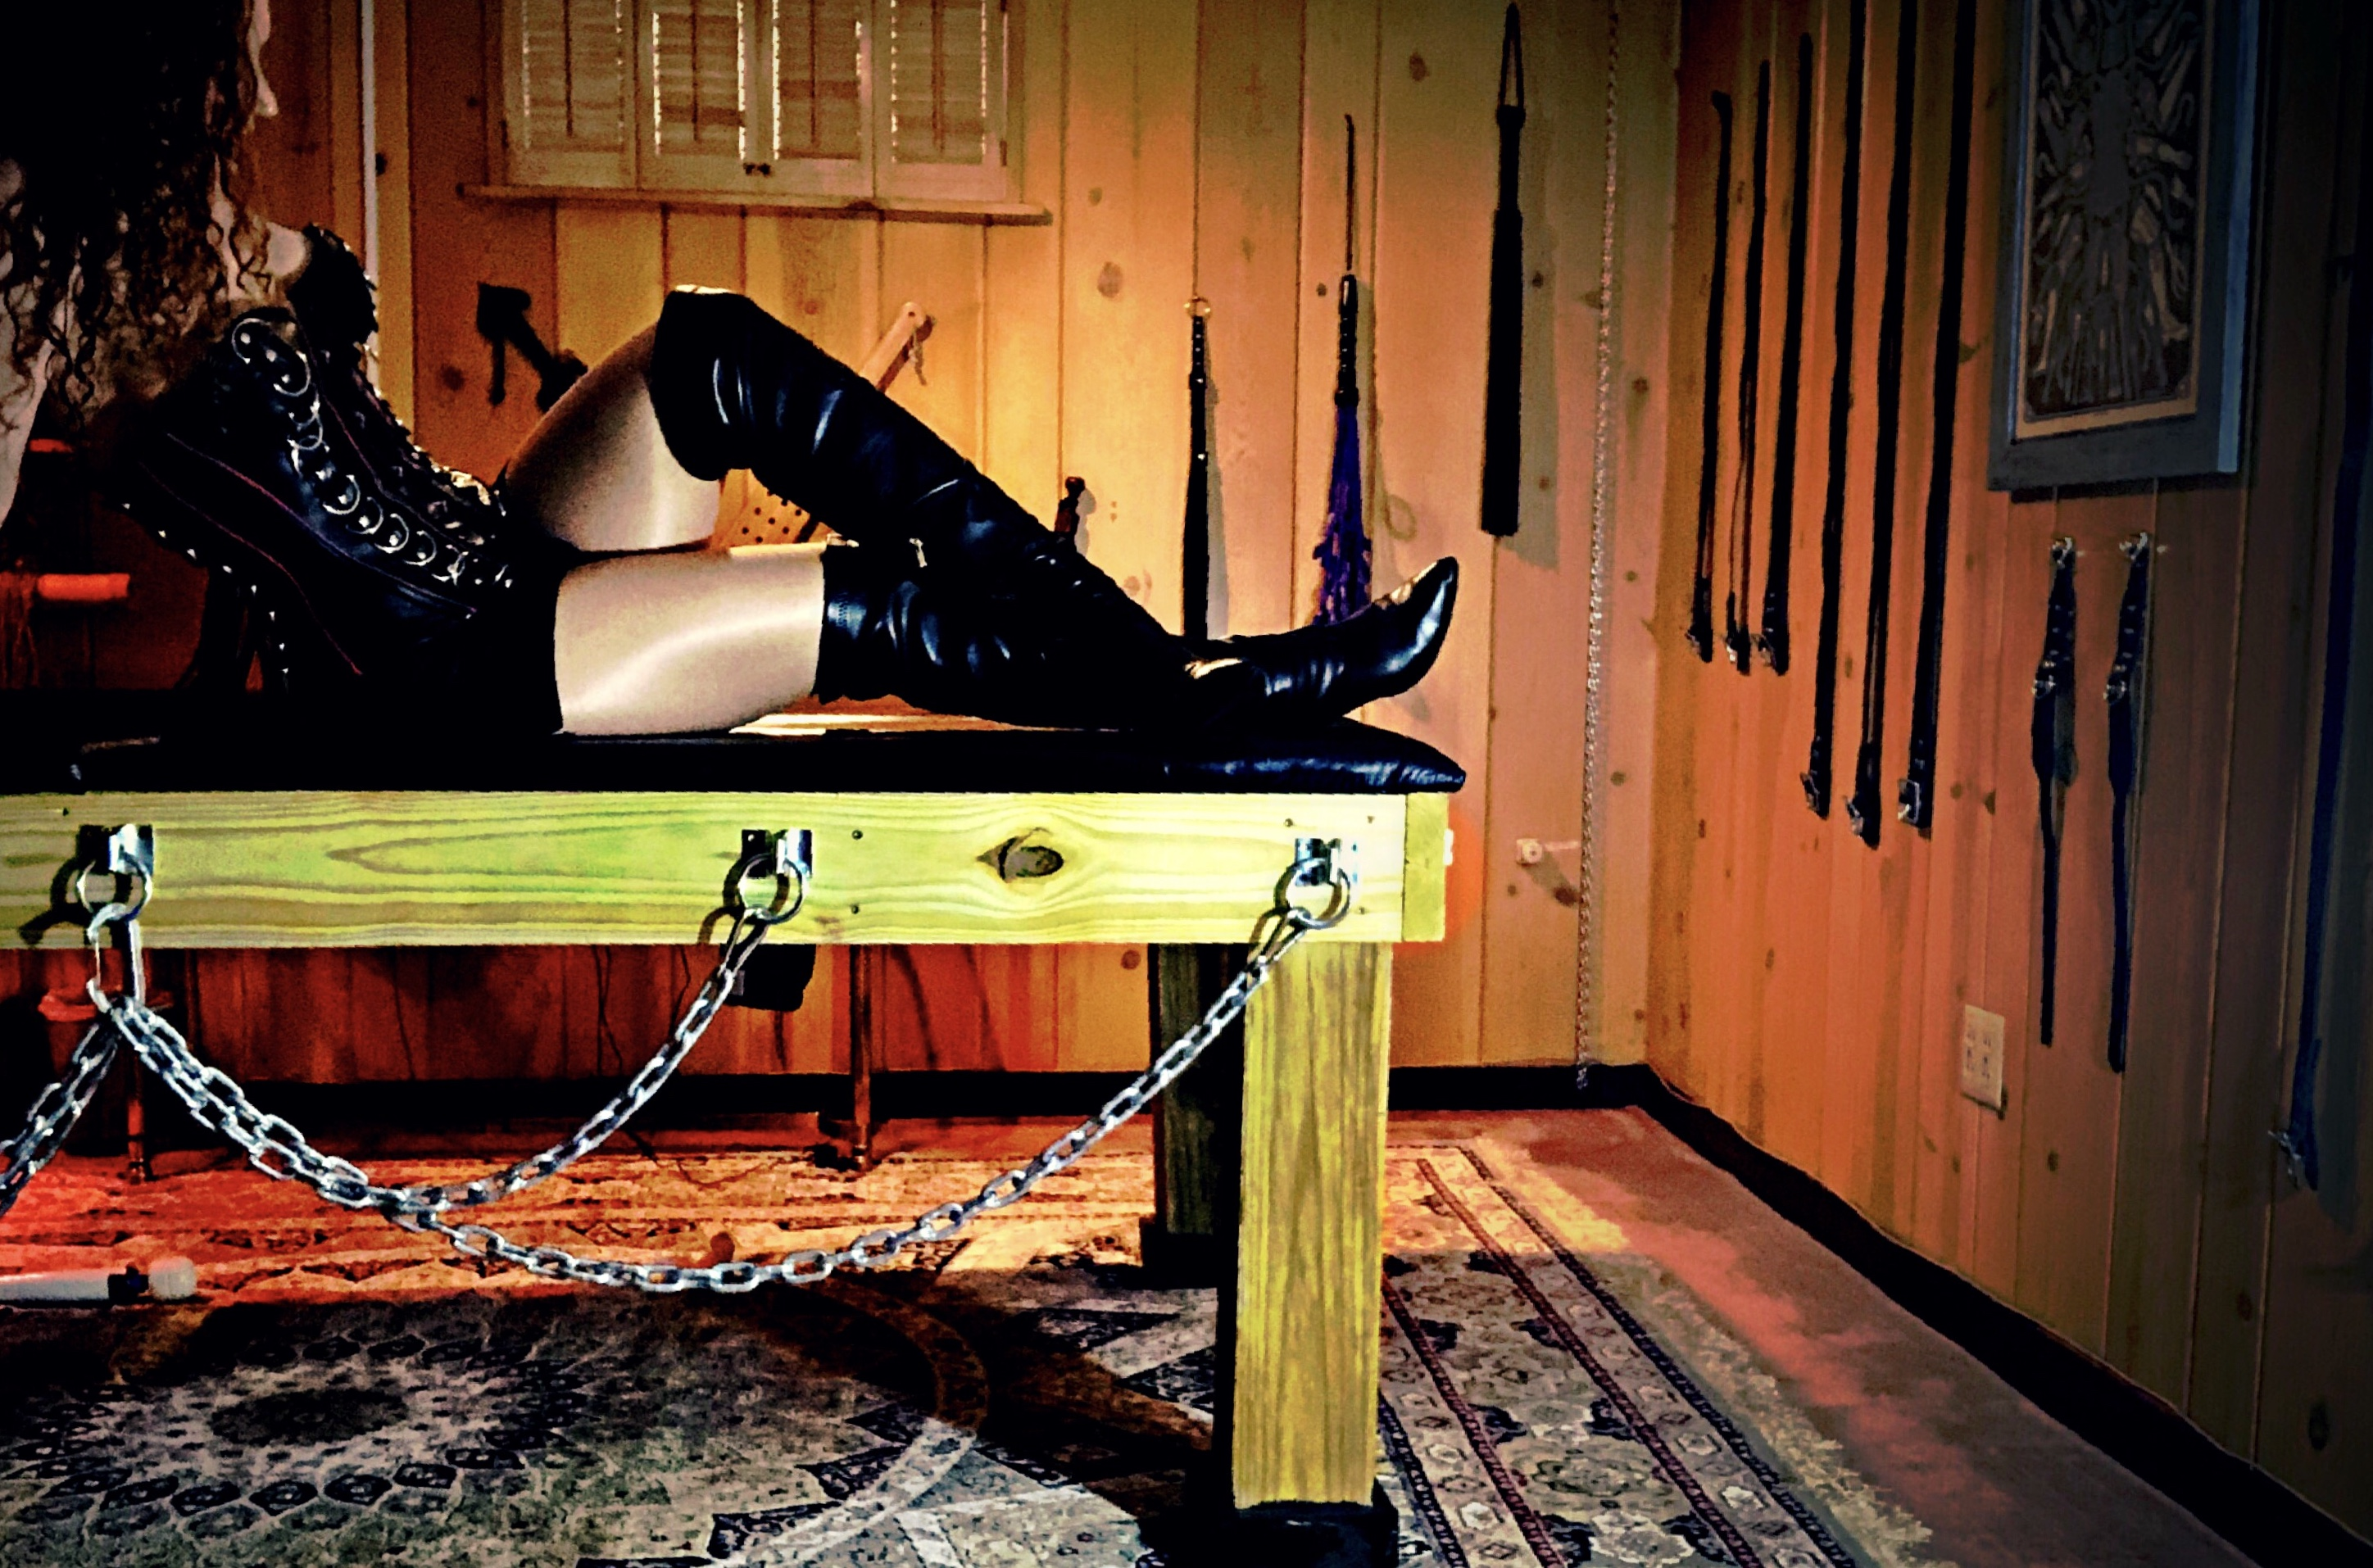 bondage table, thigh high boots, boot fetish, boot worship, dominance, submission, leather worship, leather fetish, bondage, bondage straps, chains